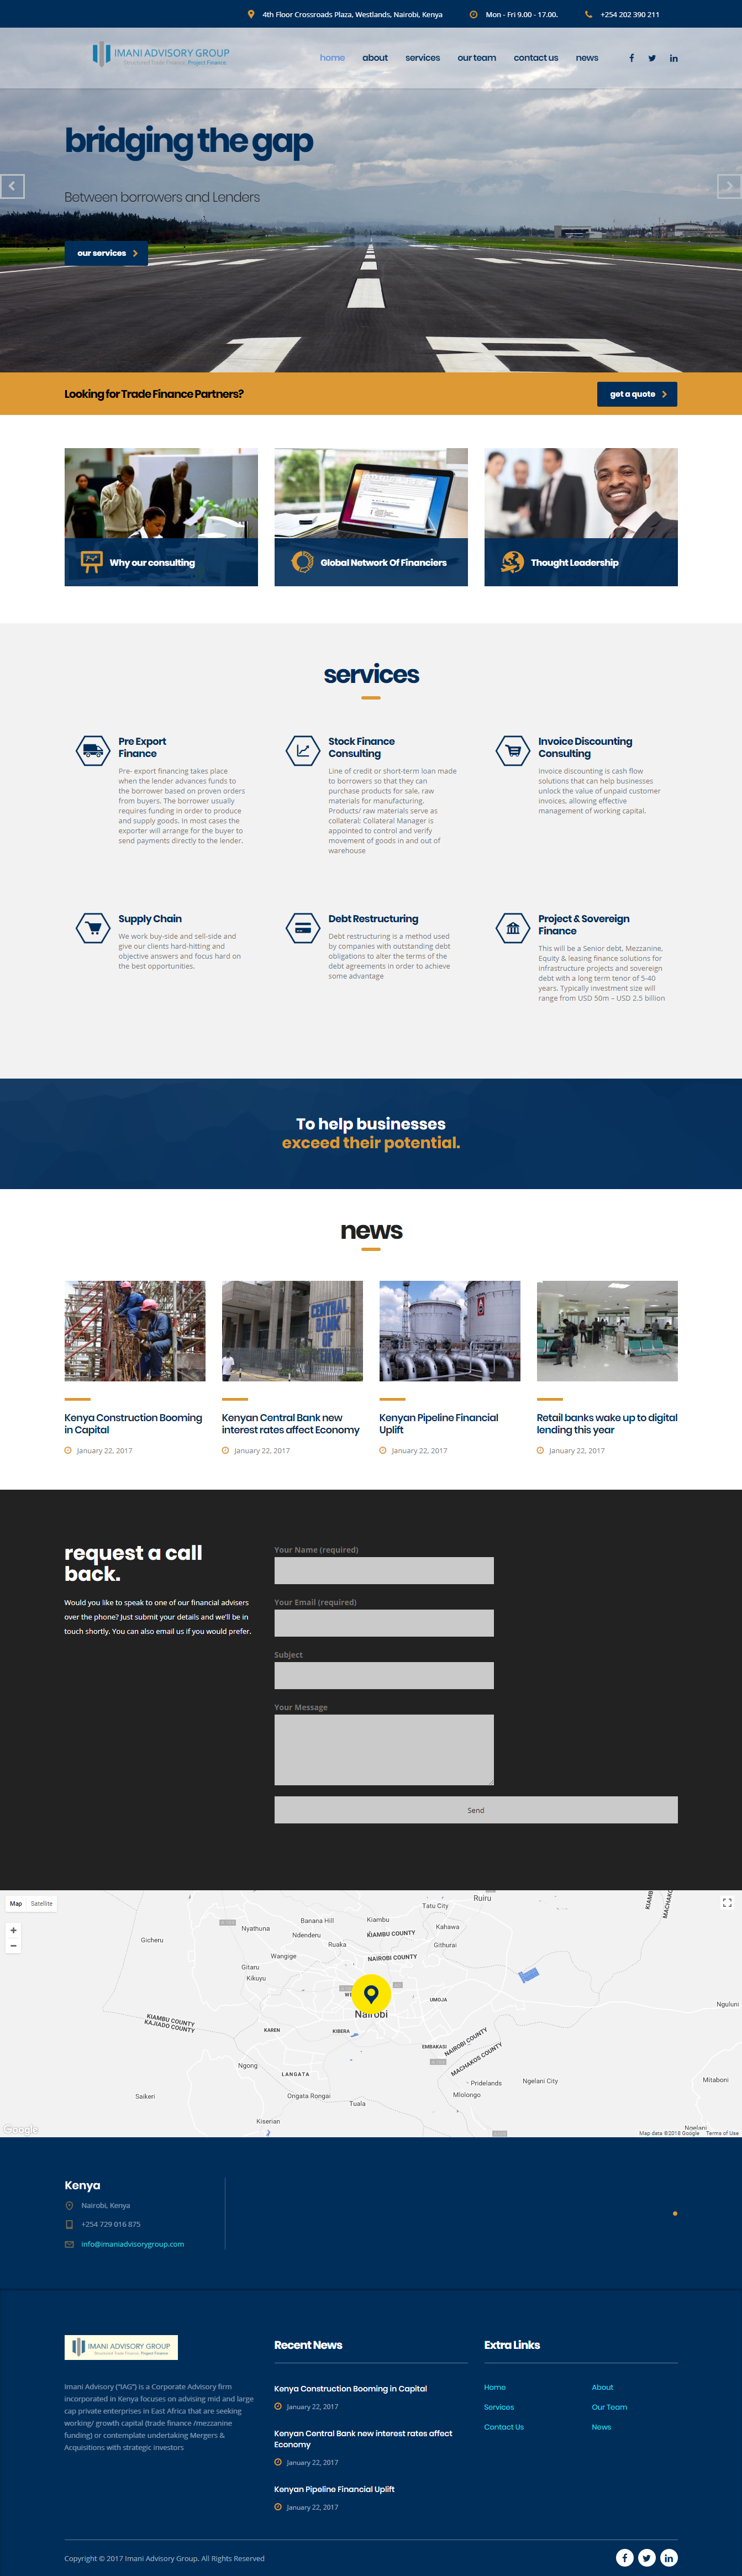 Imani Advisory Group Limited - Web Design